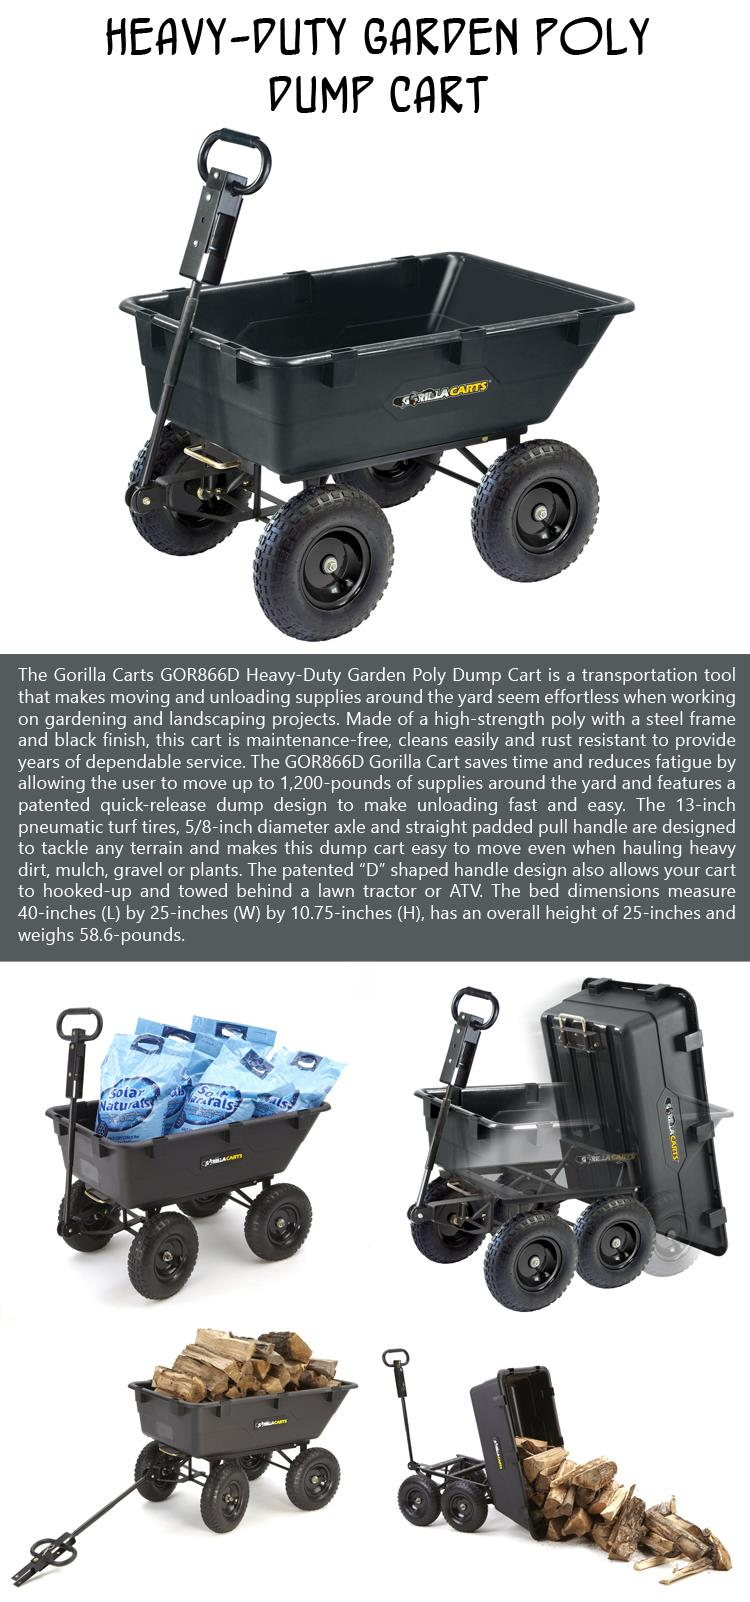 Heavy-Duty Garden Poly Dump Cart